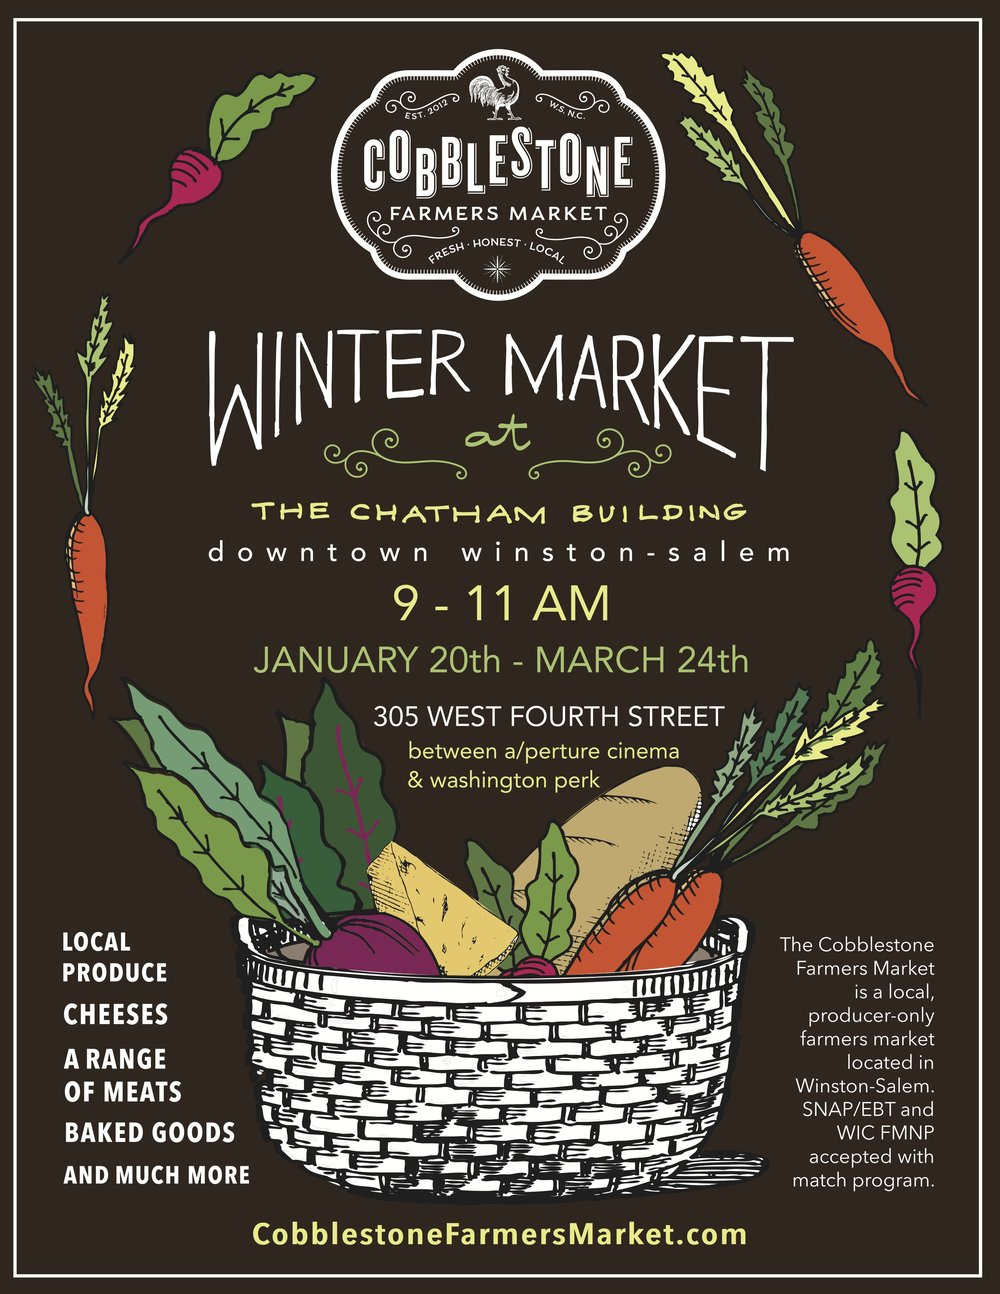 winter market poster 2018.jpg